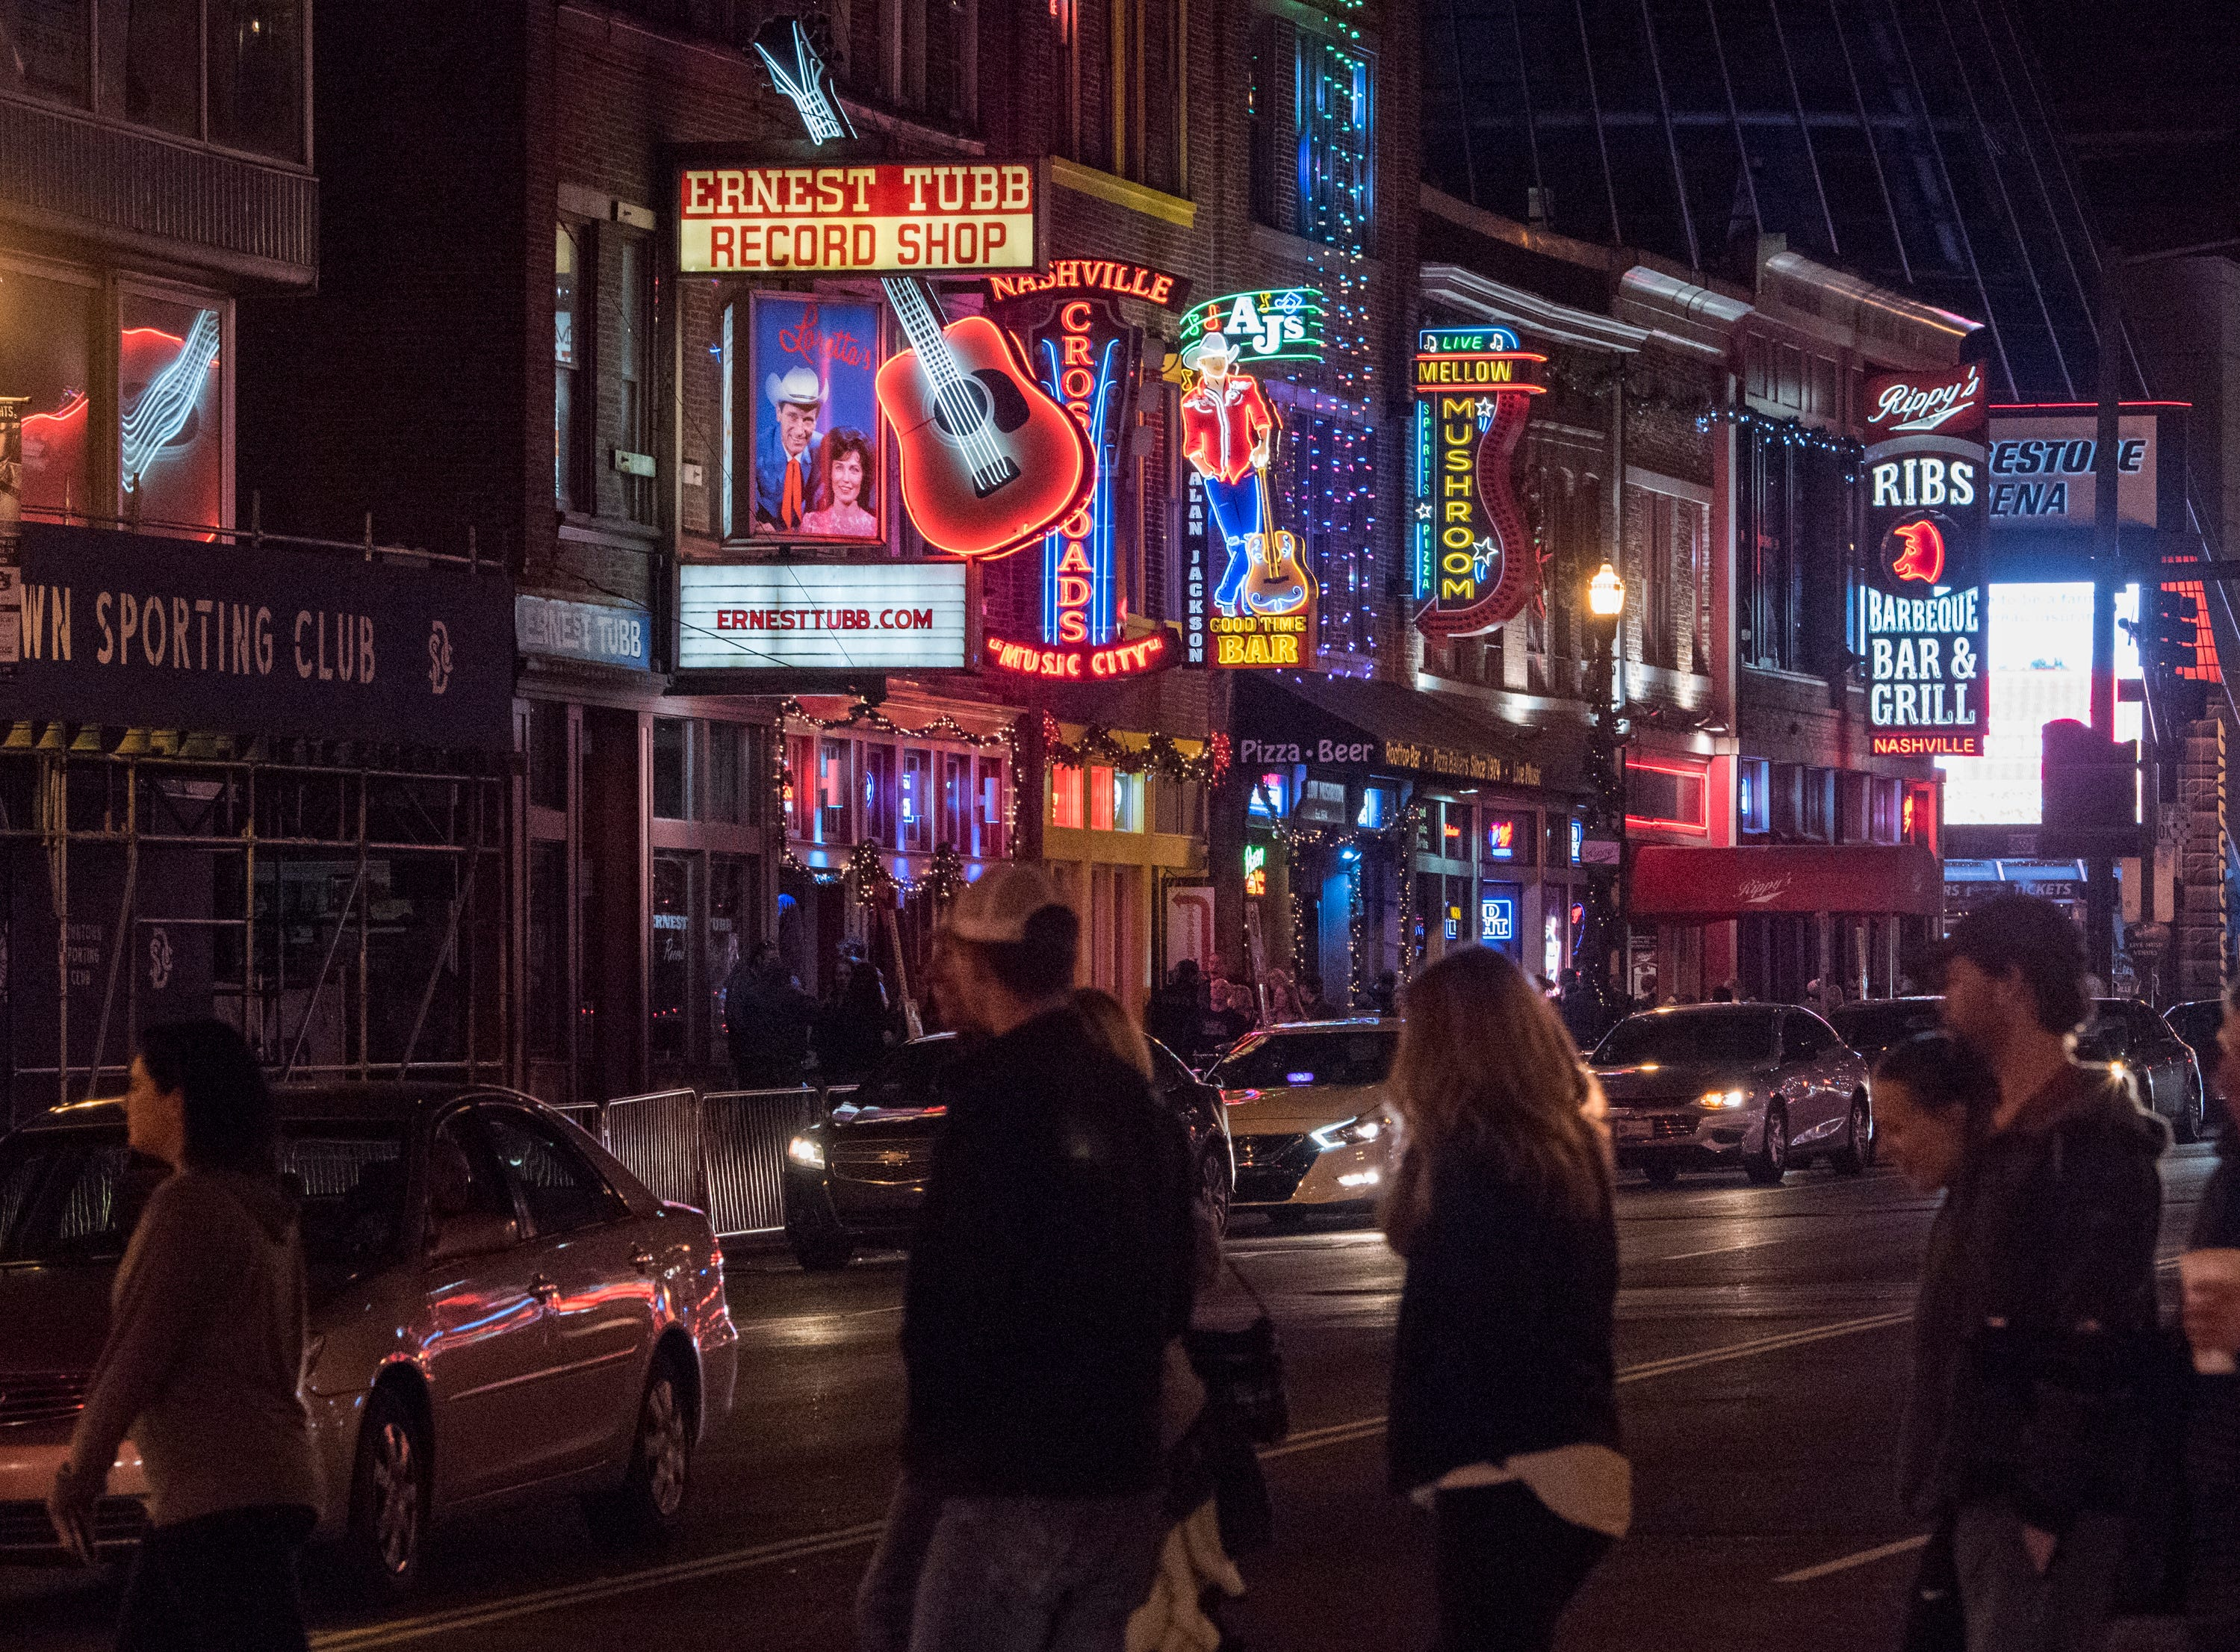 People walk around Broadway Street in Nashville, Ten., on Wednesday, Dec. 26, 2018. Auburn takes on Purdue in the Music City Bowl Friday.